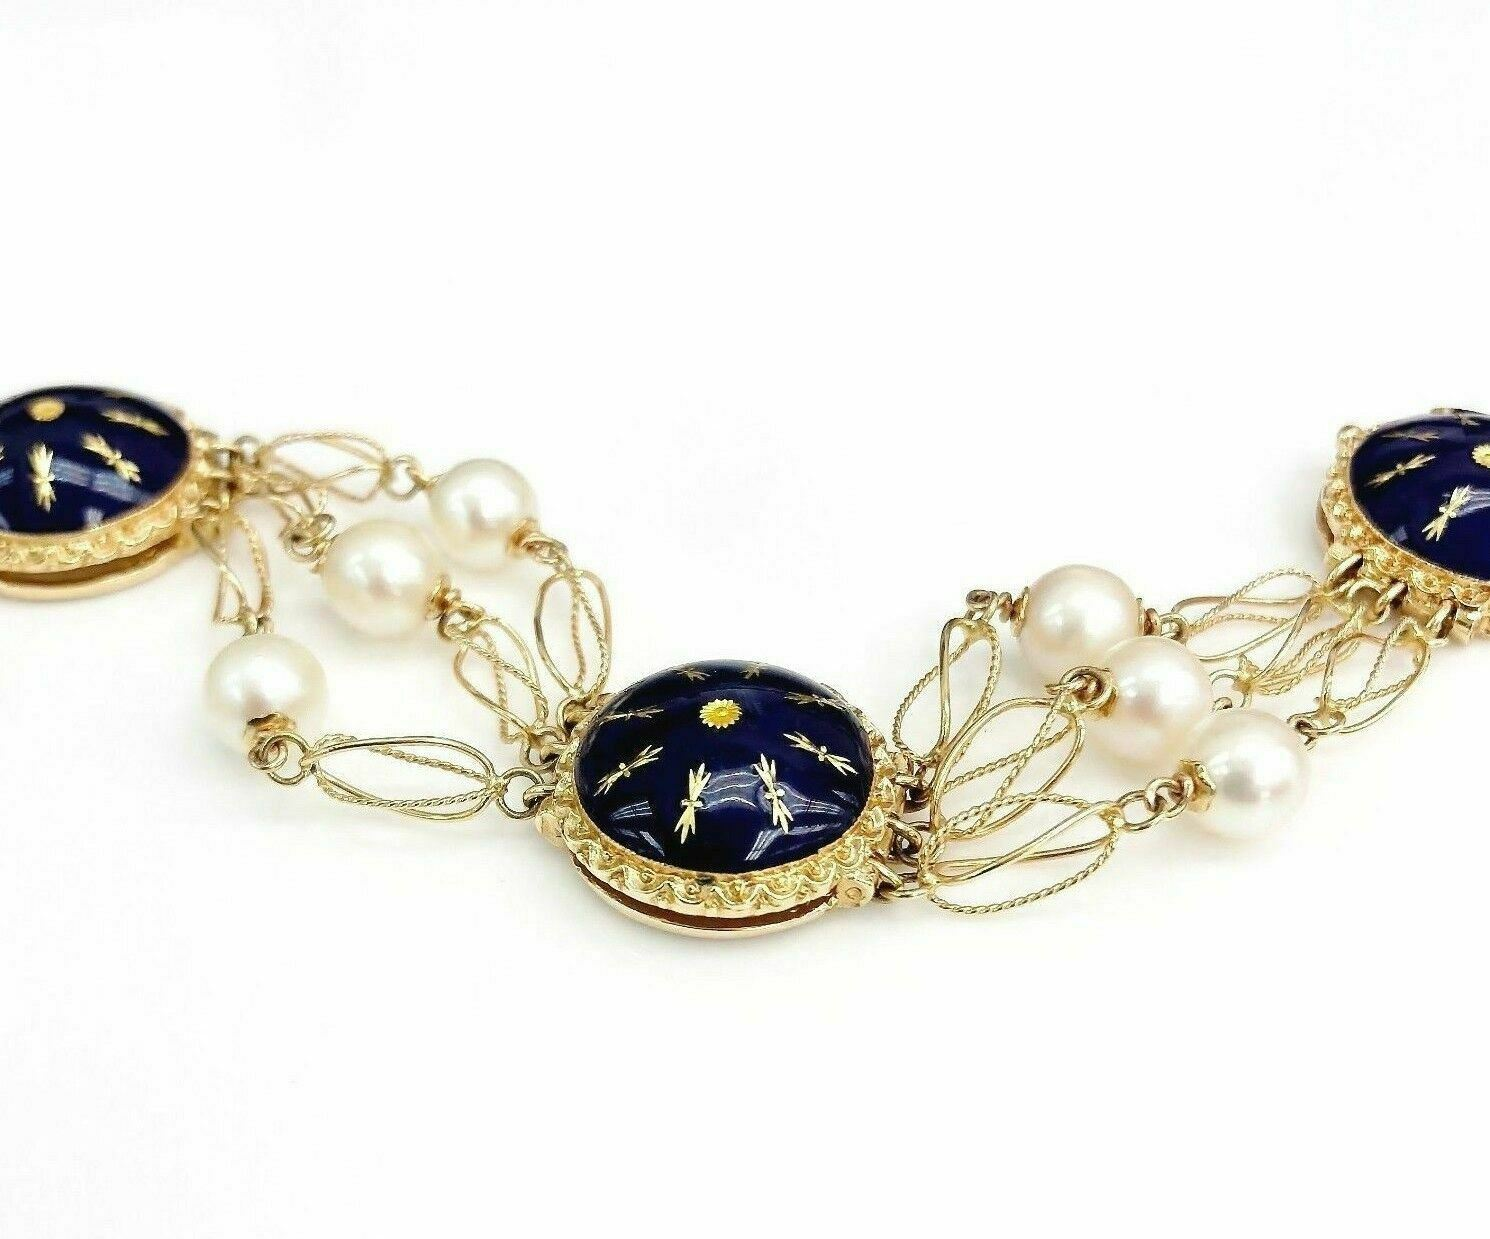 18K Yellow Gold Vintage Pearl with Amazing Enamel Work Bracelet Italian Made